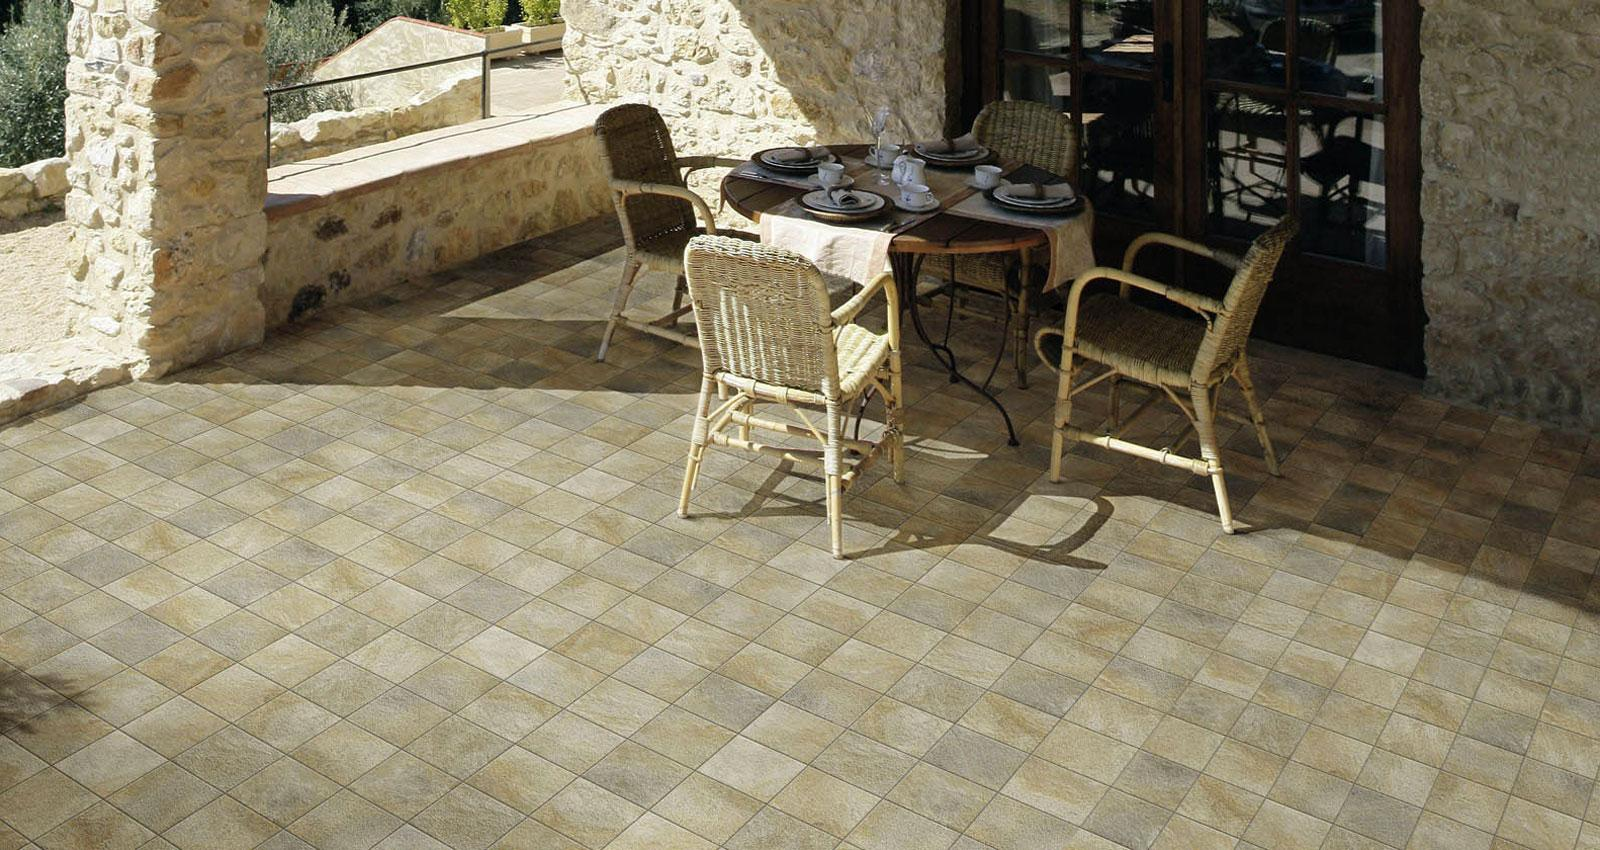 Corte outdoor porcelain tiles marazzi corte stone effect outdoor dailygadgetfo Choice Image